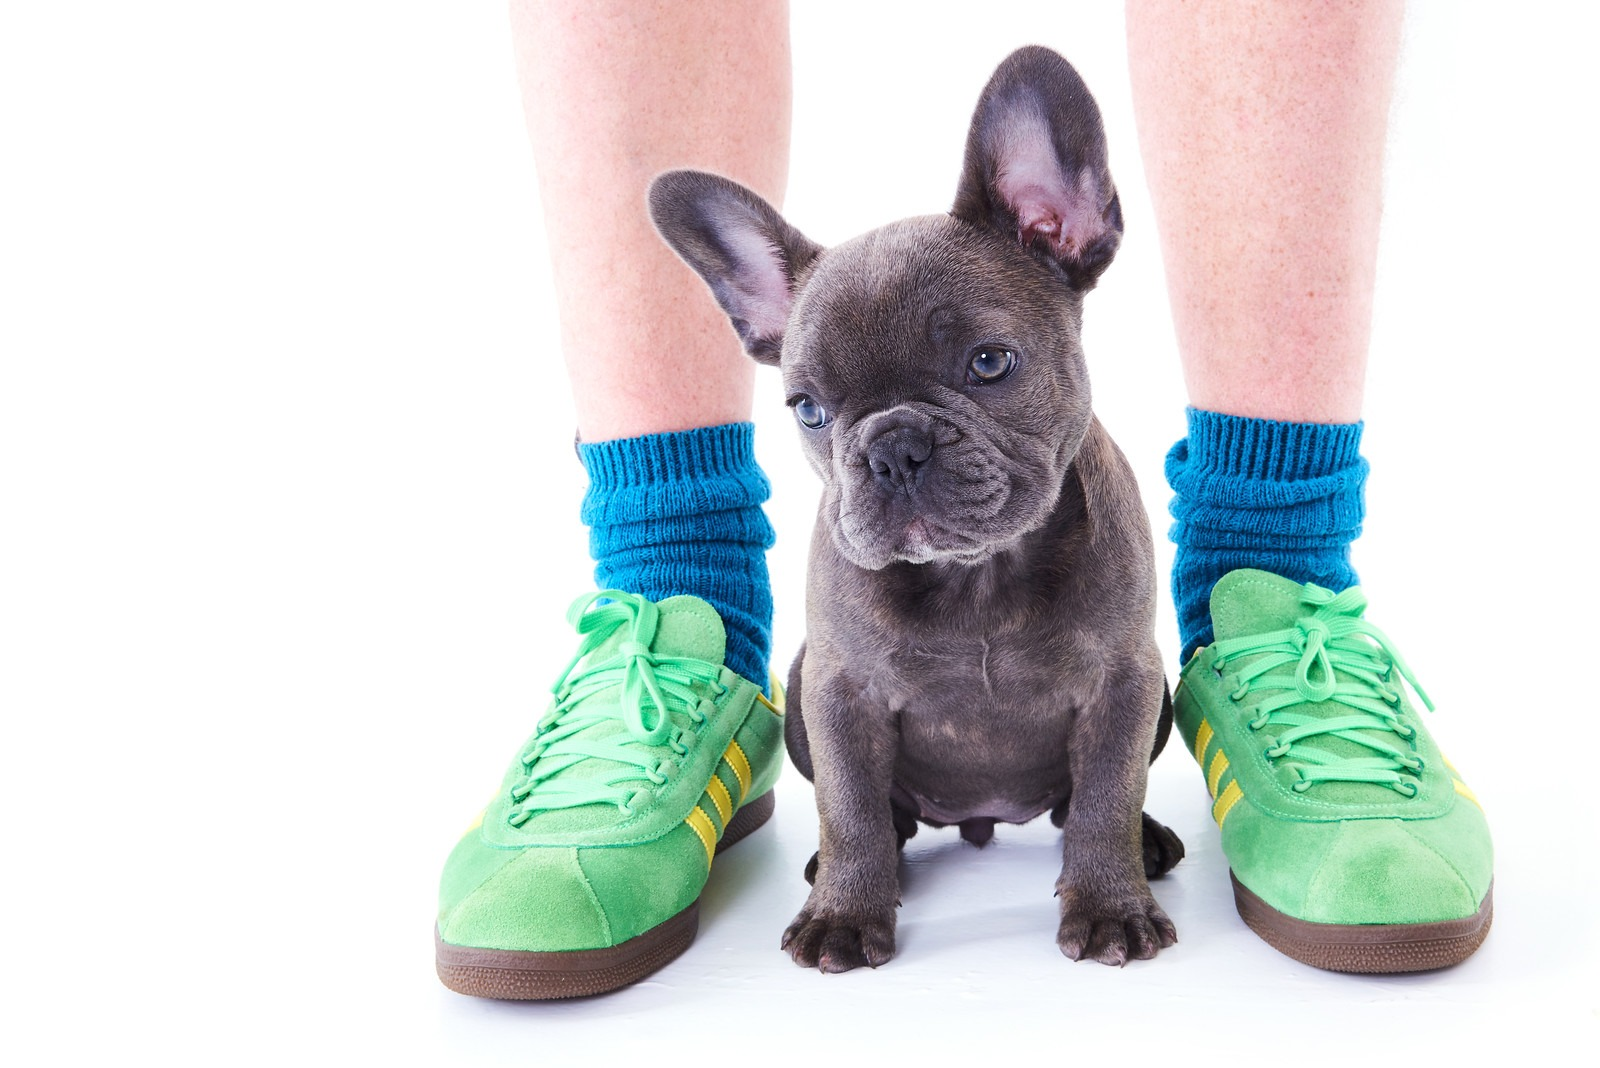 Pet Portraits taken in Newcastle Photography studio of French Bulldog Puppy